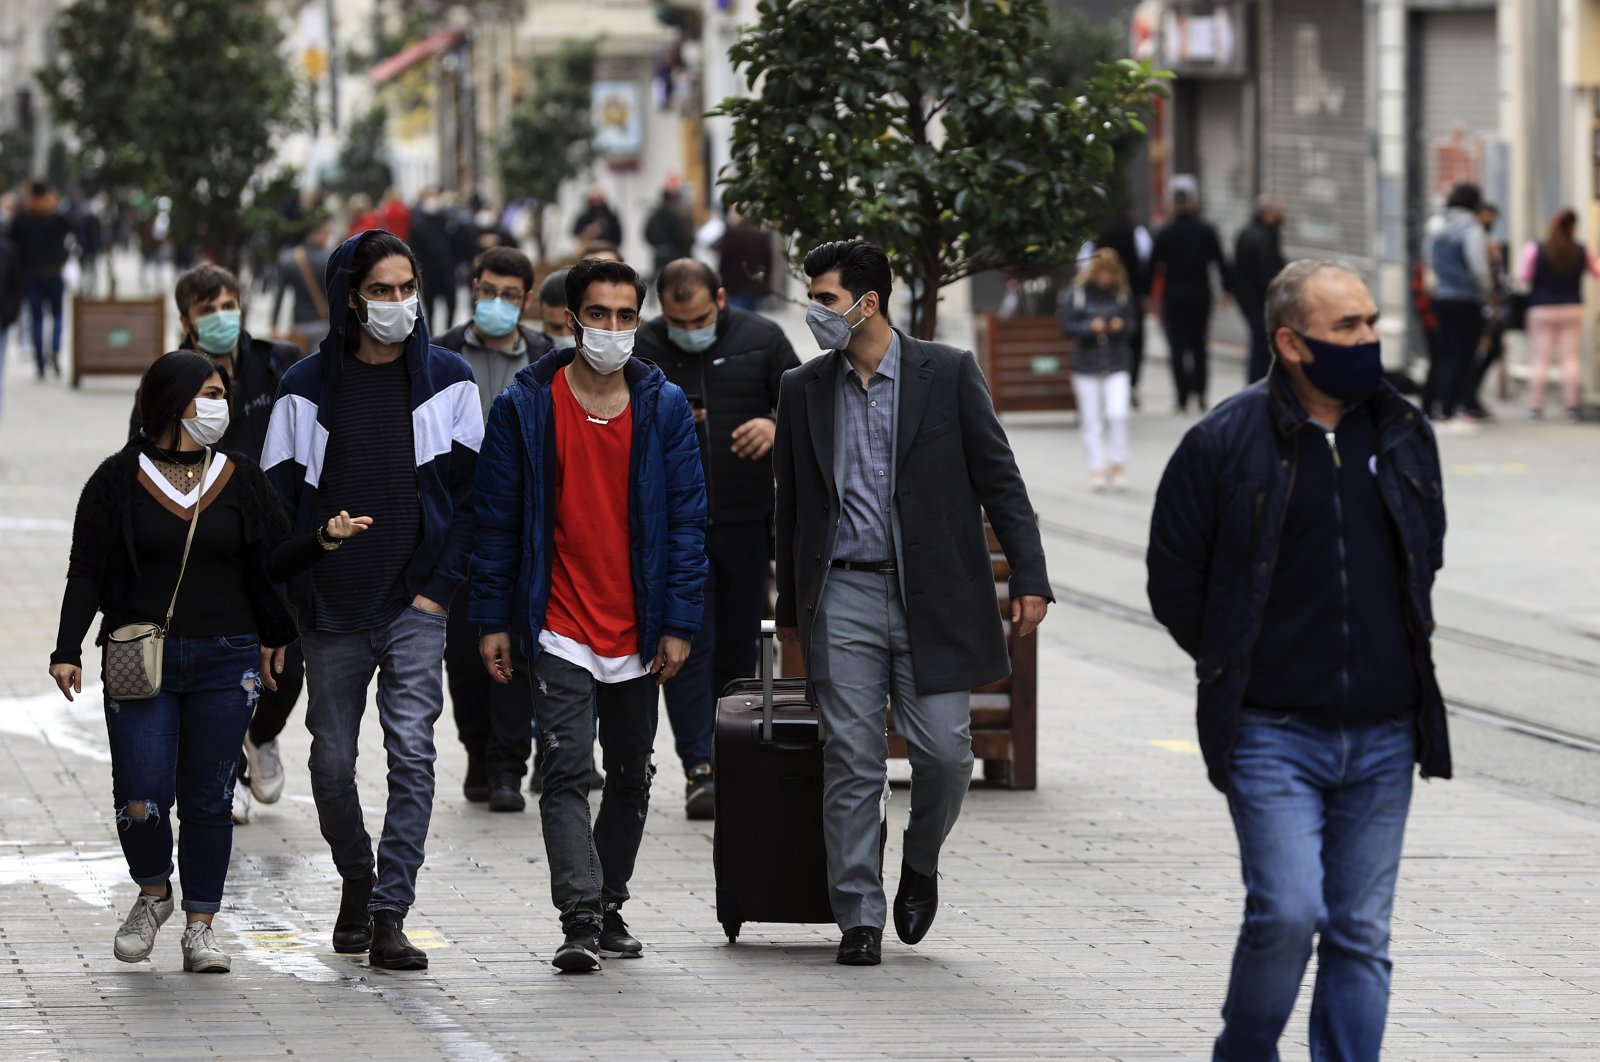 Tourists walk on Istiklal Avenue, one of the main shopping streets in Istanbul, Turkey, during a lockdown, Jan. 3, 2021. (AA Photo)